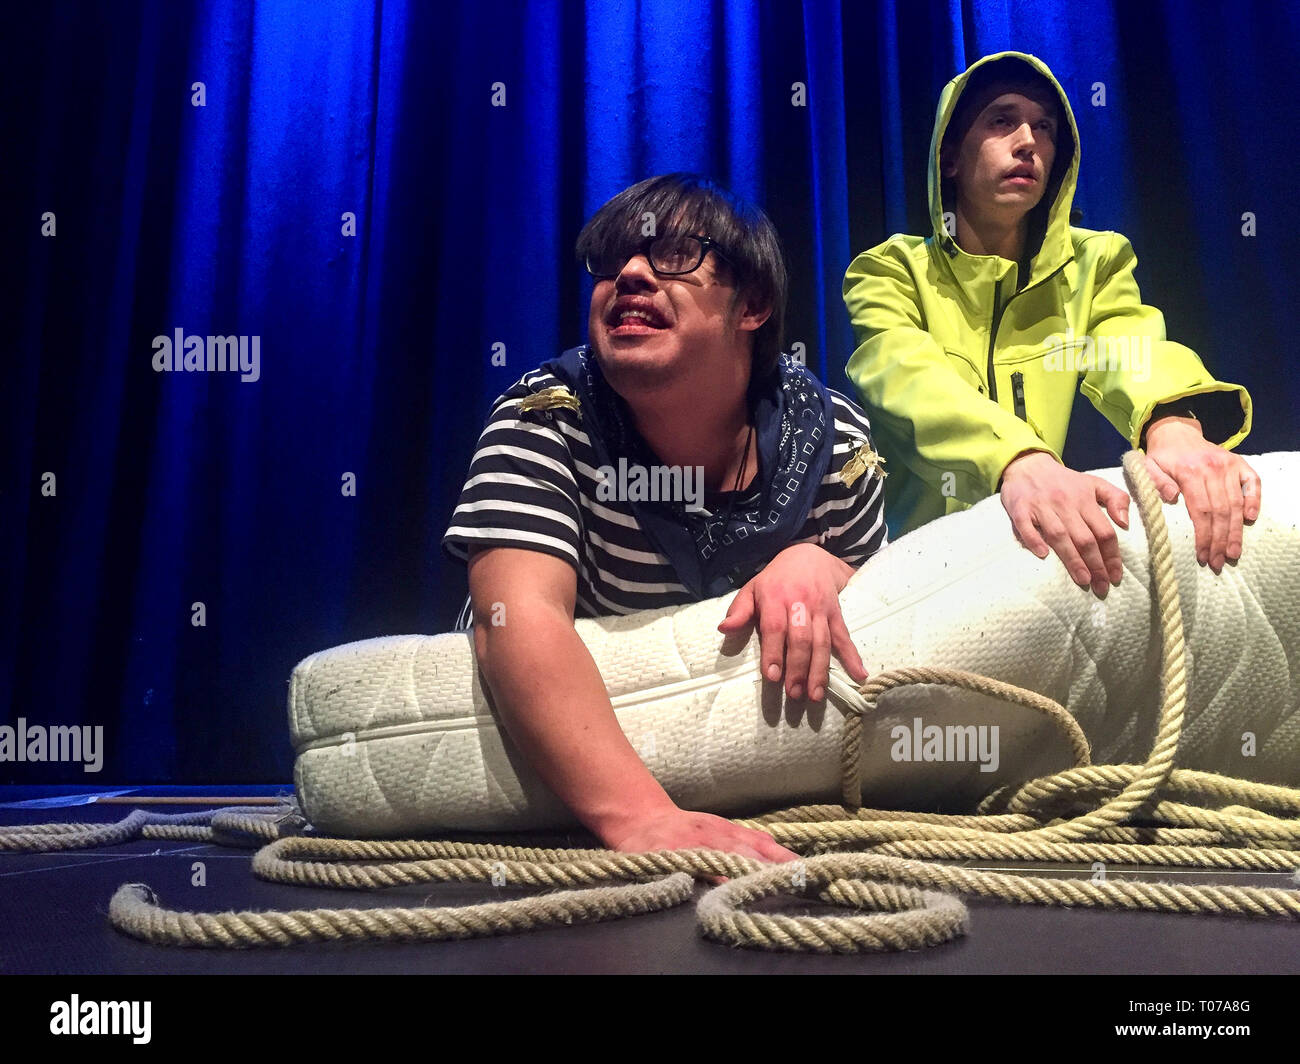 """28 February 2019, Bavaria, München: Dennis Fell-Hernandez (l) and Thomas Nissl play the """"Sturm"""" after William Shakespeare at the """"Werkschau der Freien Bühne München"""". Actors with disabilities: How does inclusion work in the theatre? On the Free Stage in Munich, actors with and without disabilities work together professionally. It is the first inclusive theatre in Bavaria. Photo: Sina Schuldt/dpa Stock Photo"""